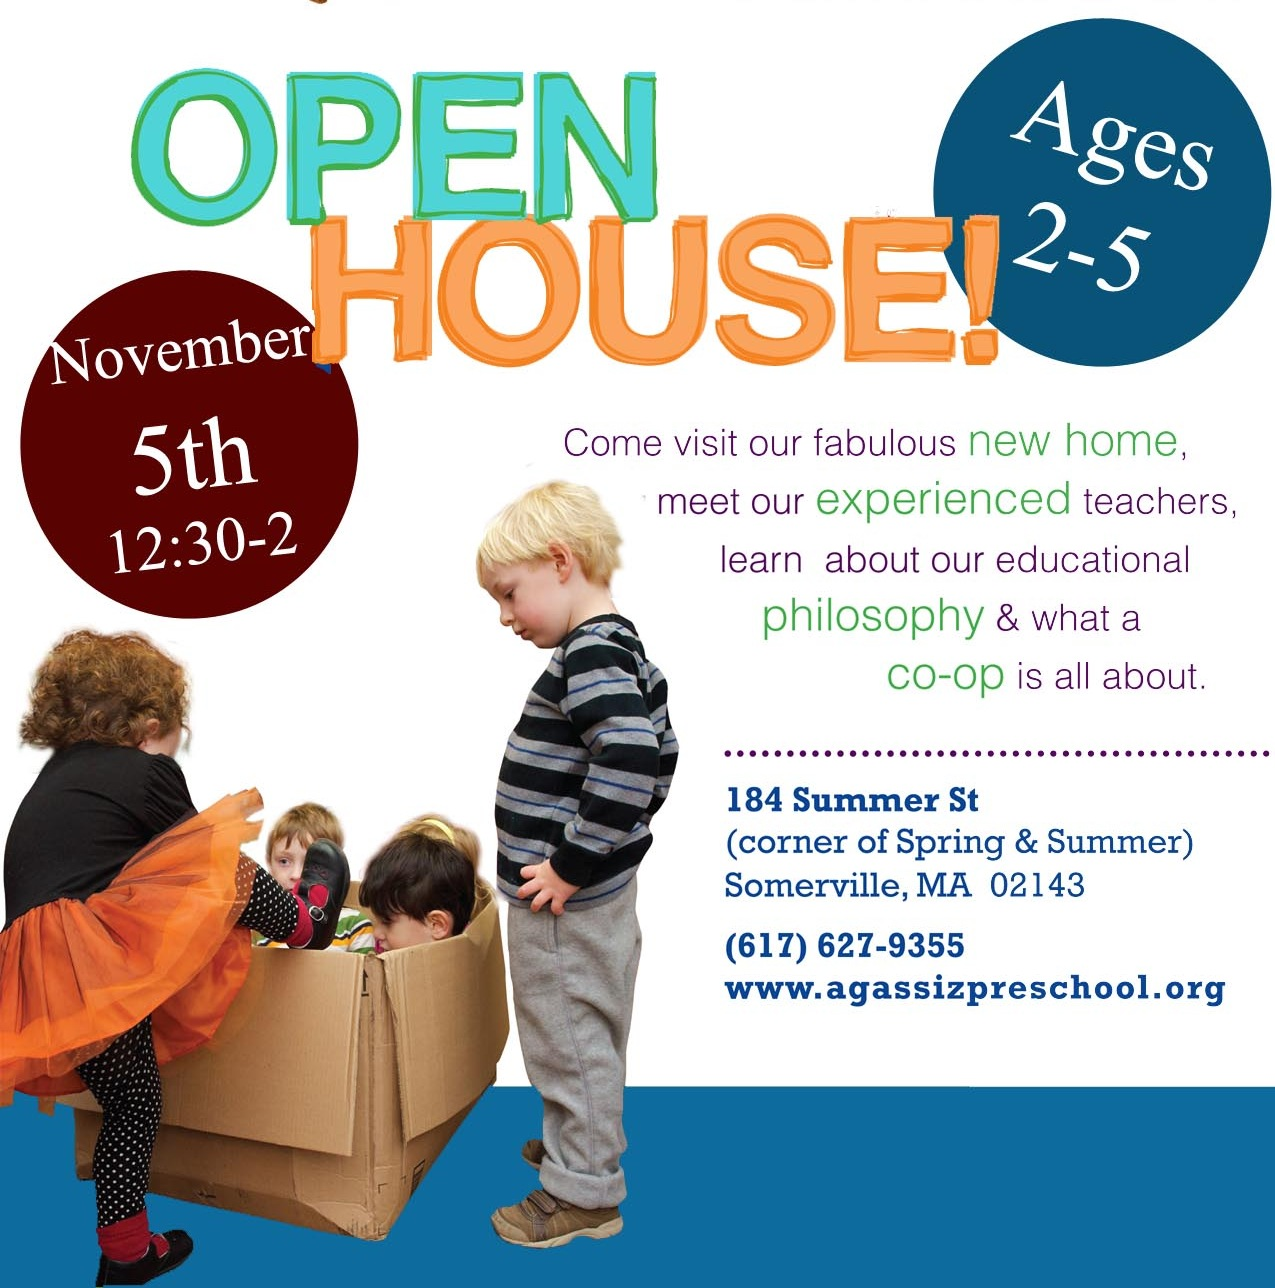 Agassiz open house Nov 5 2013